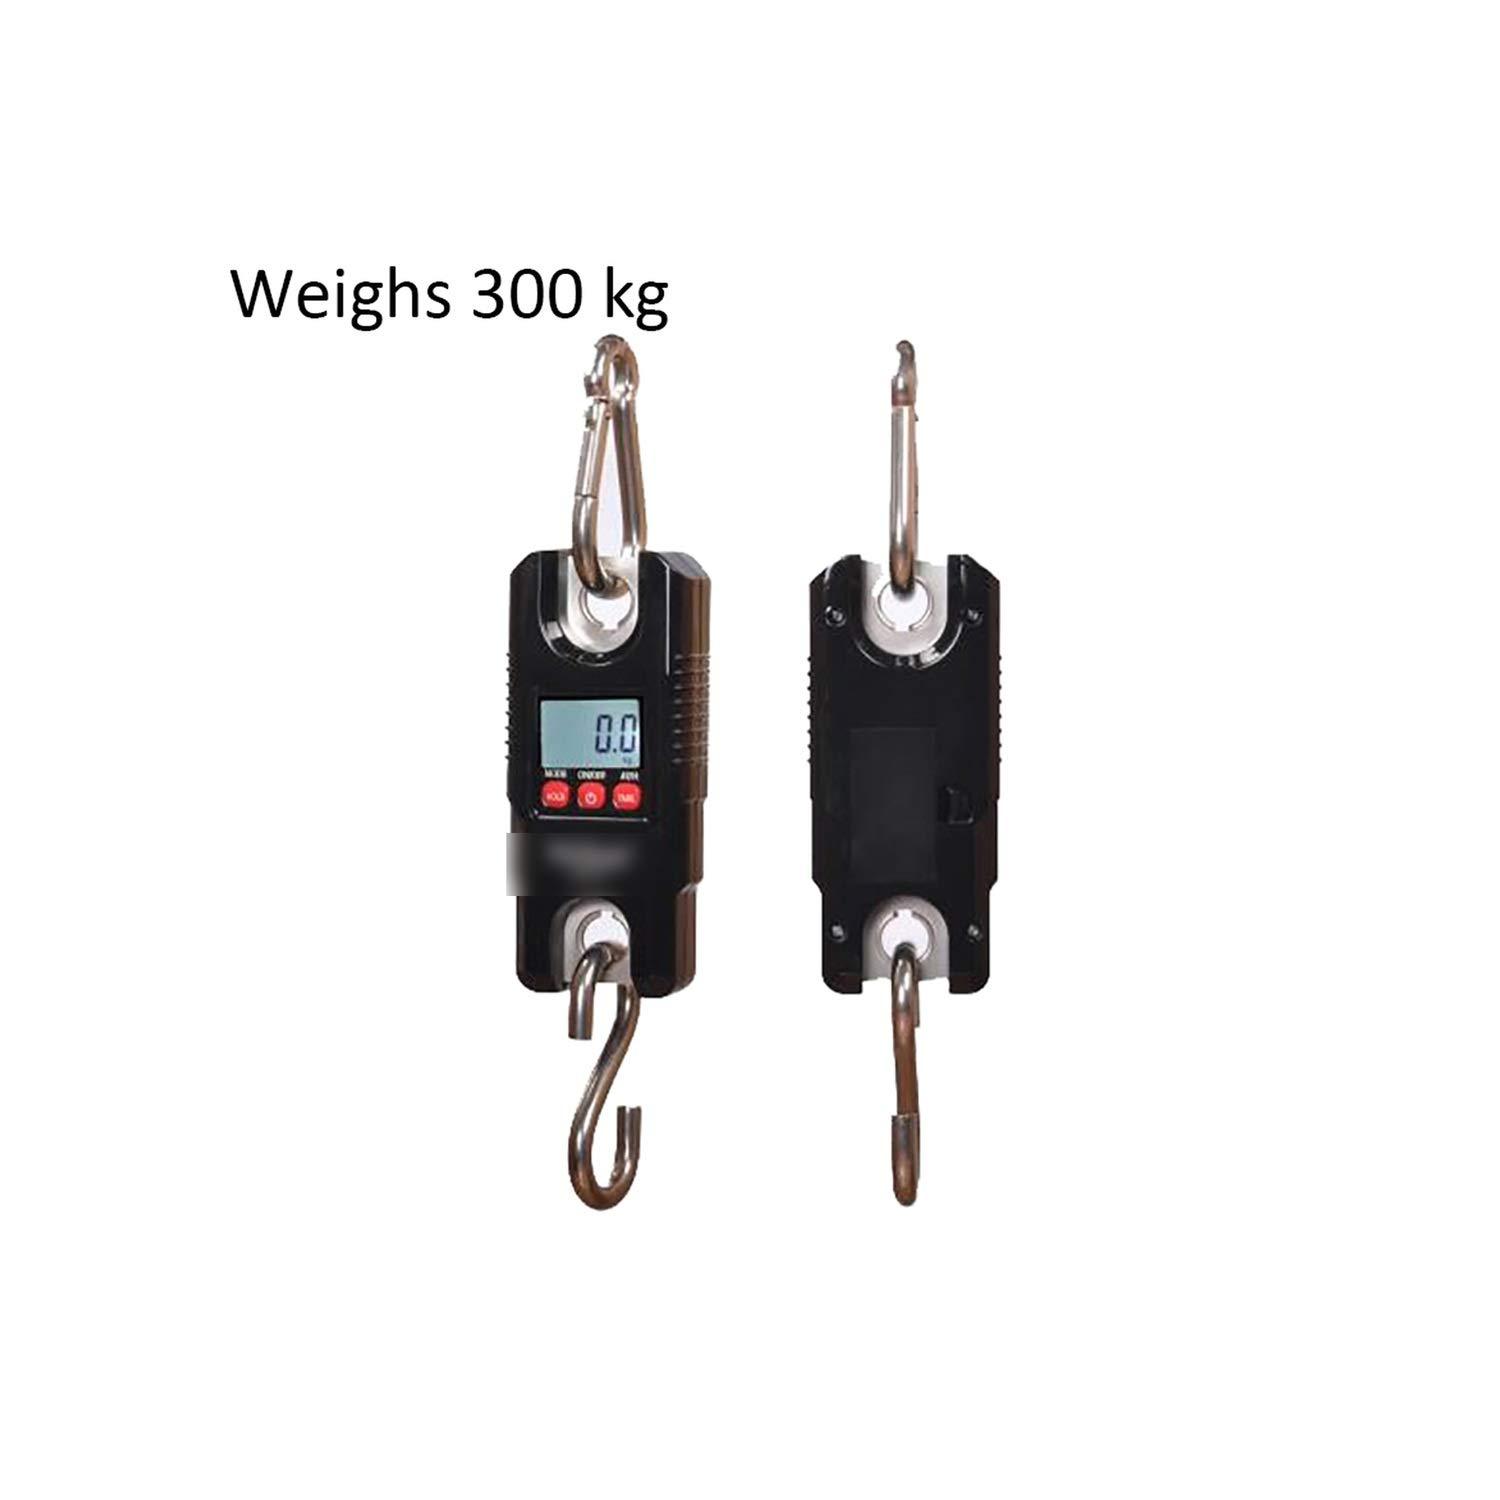 300Kg/660Lb Electronic Mini Digital Hook Scale Luggage Lcd Portable Stainless Steel Heavy Scale,0.1Kg-300Kg